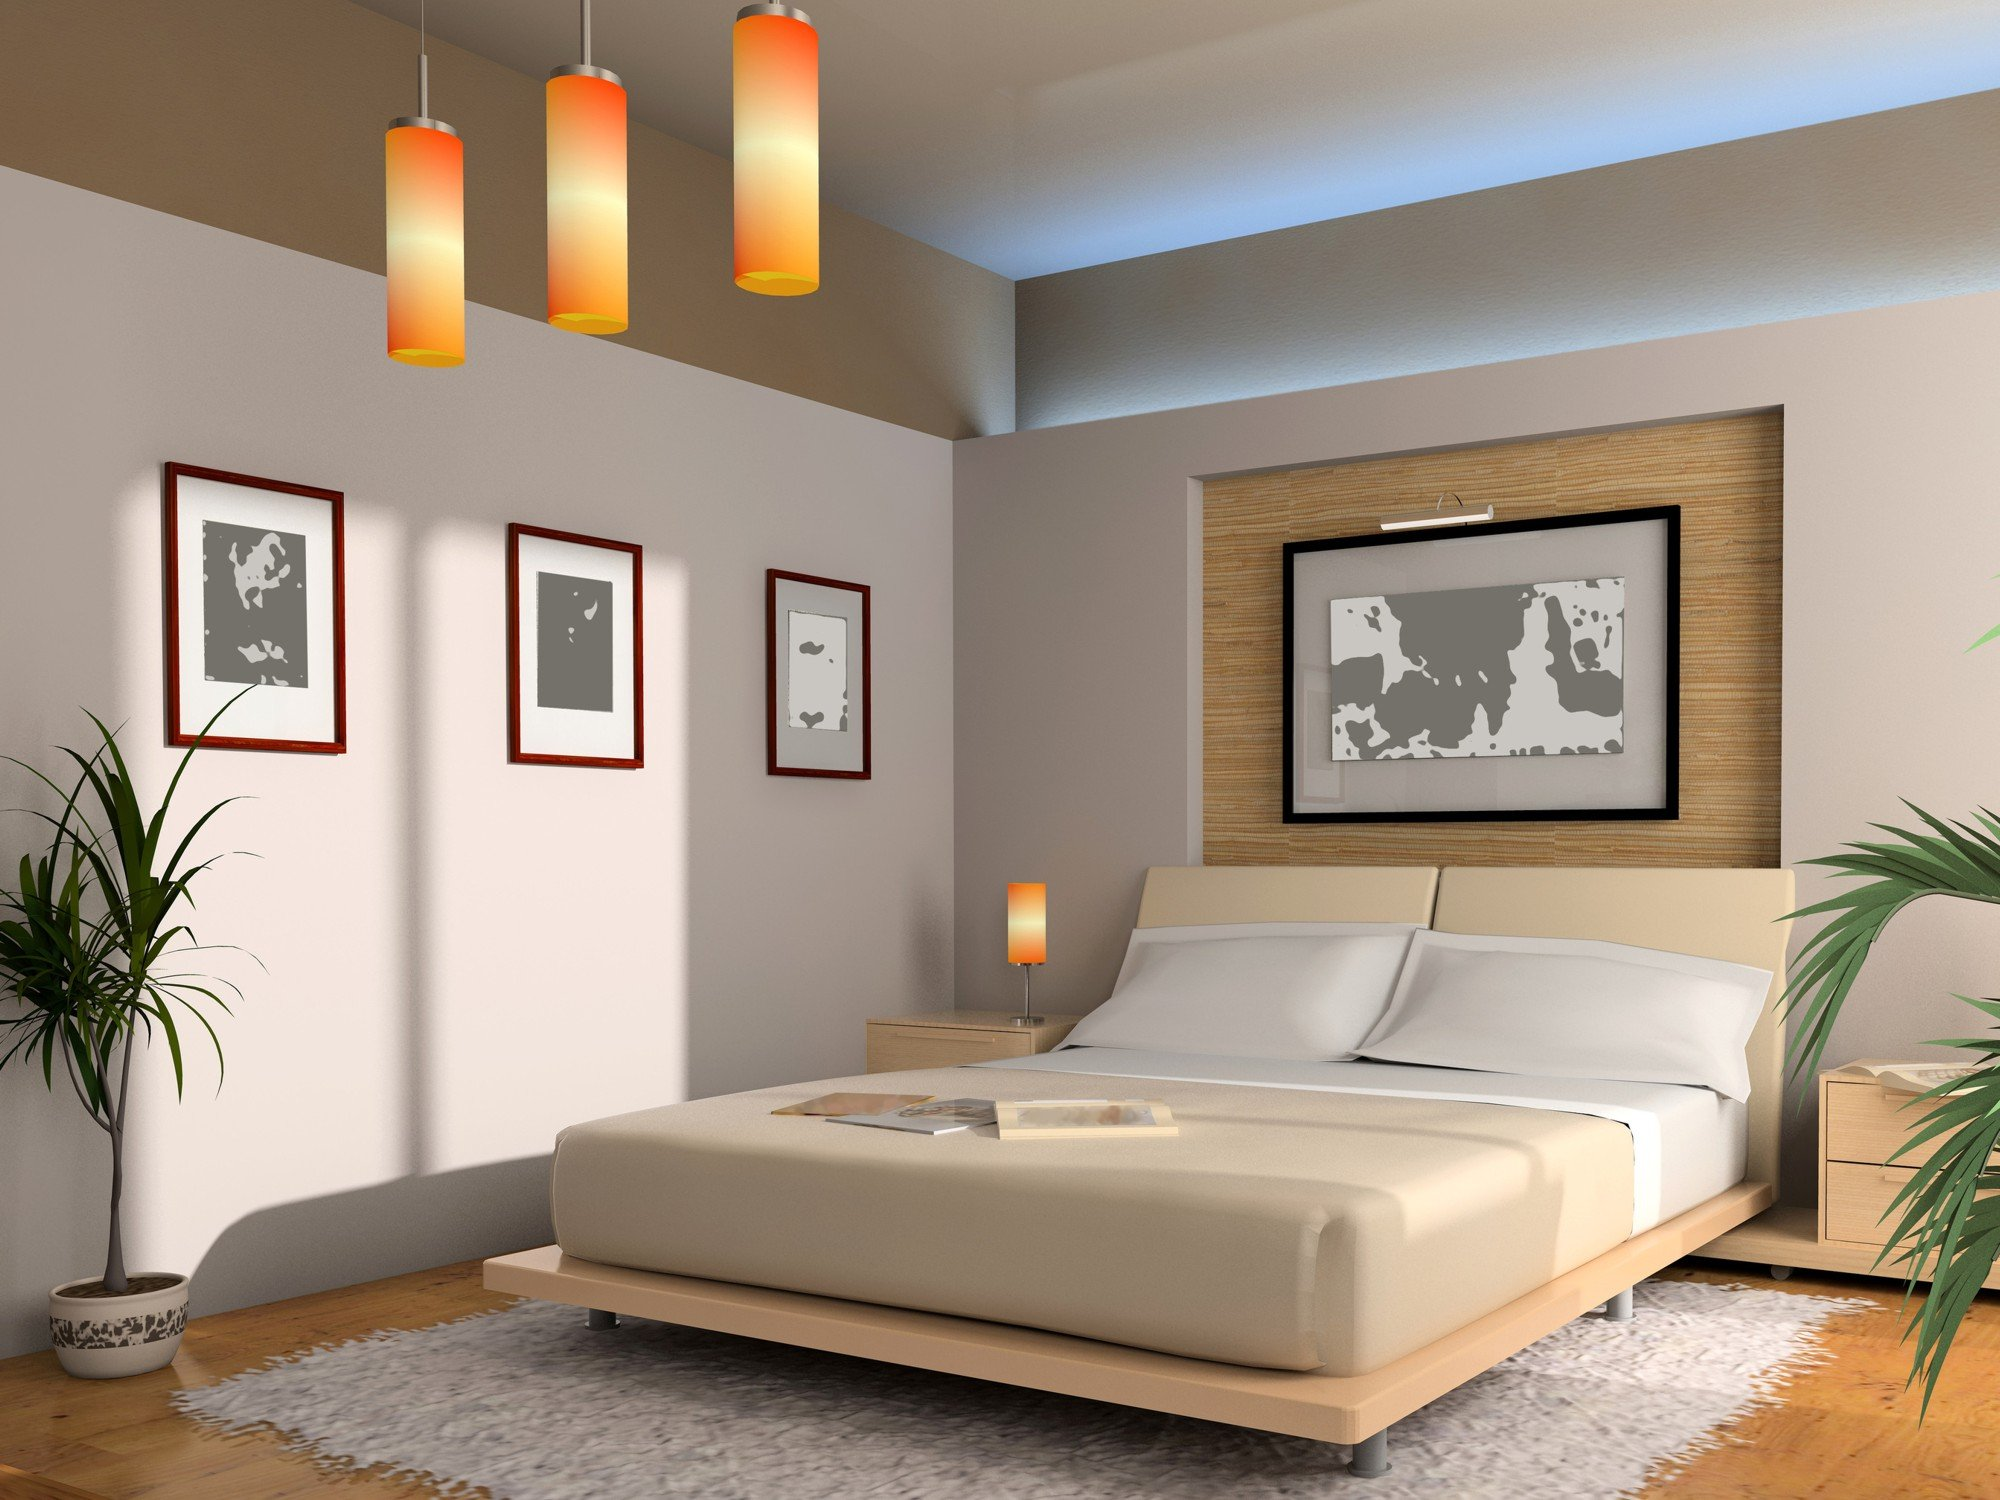 feng shui schlafzimmer einrichten m belideen. Black Bedroom Furniture Sets. Home Design Ideas